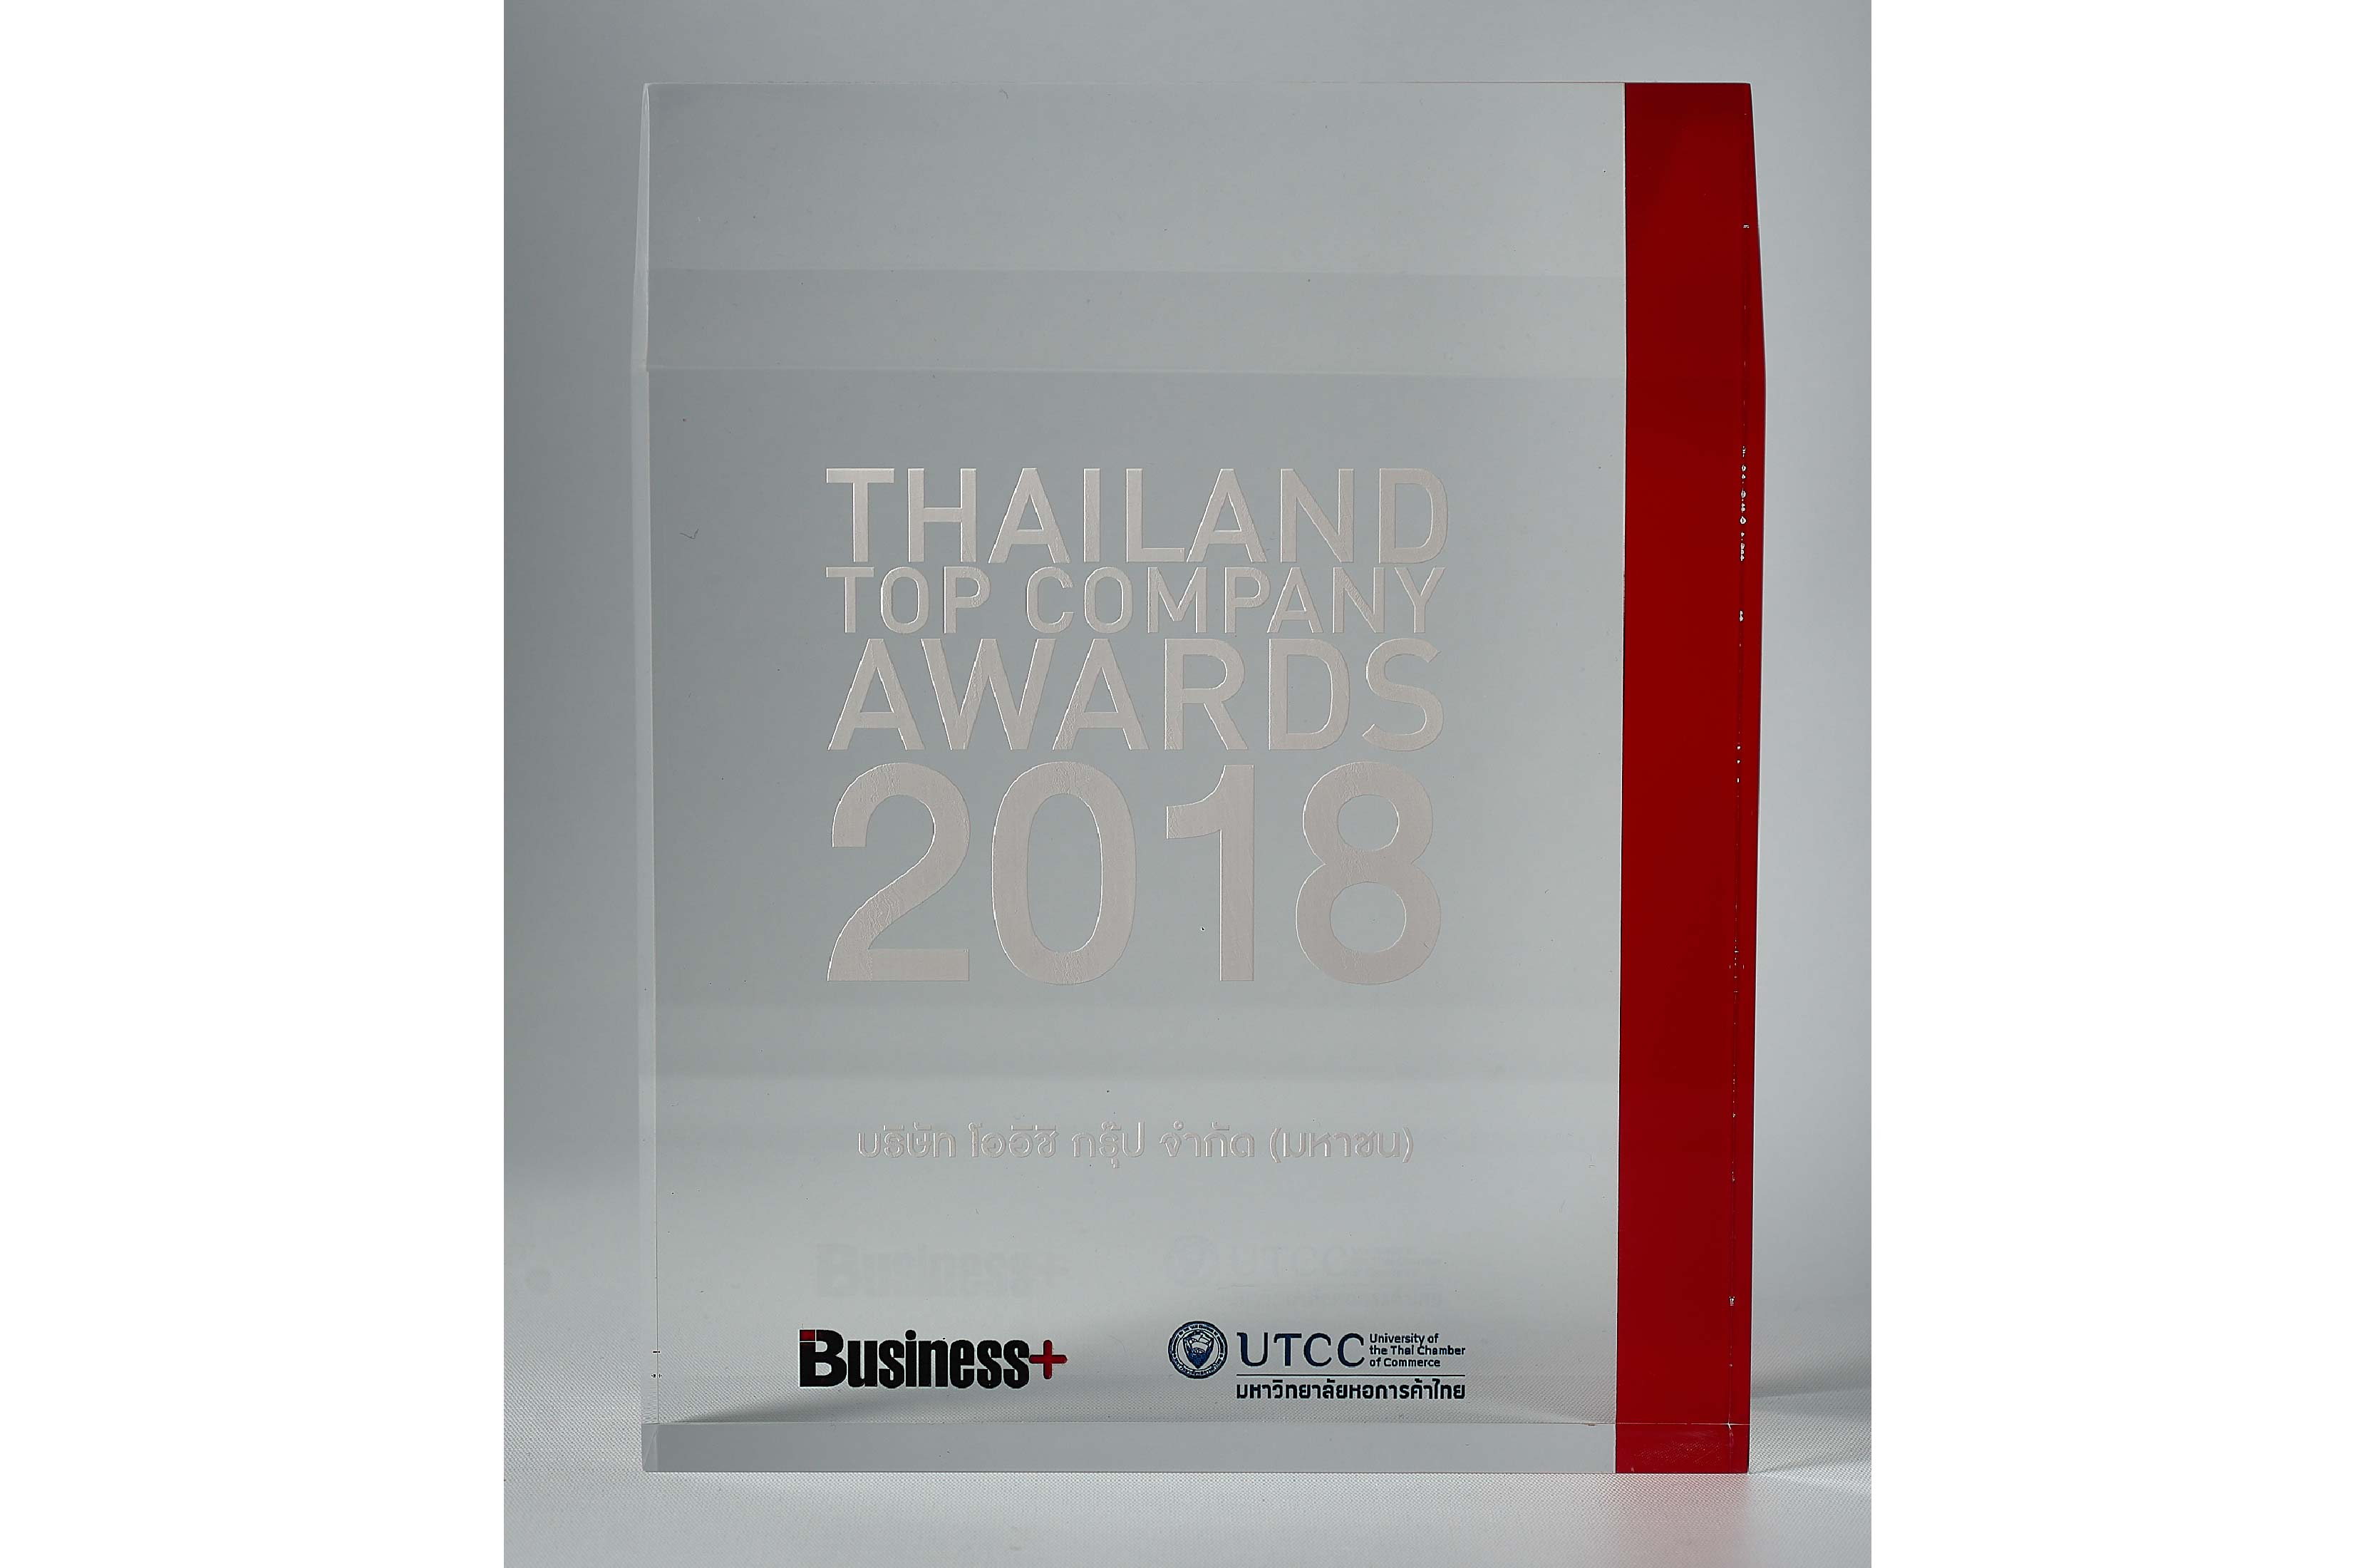 Thailand Top Company Awards 2018